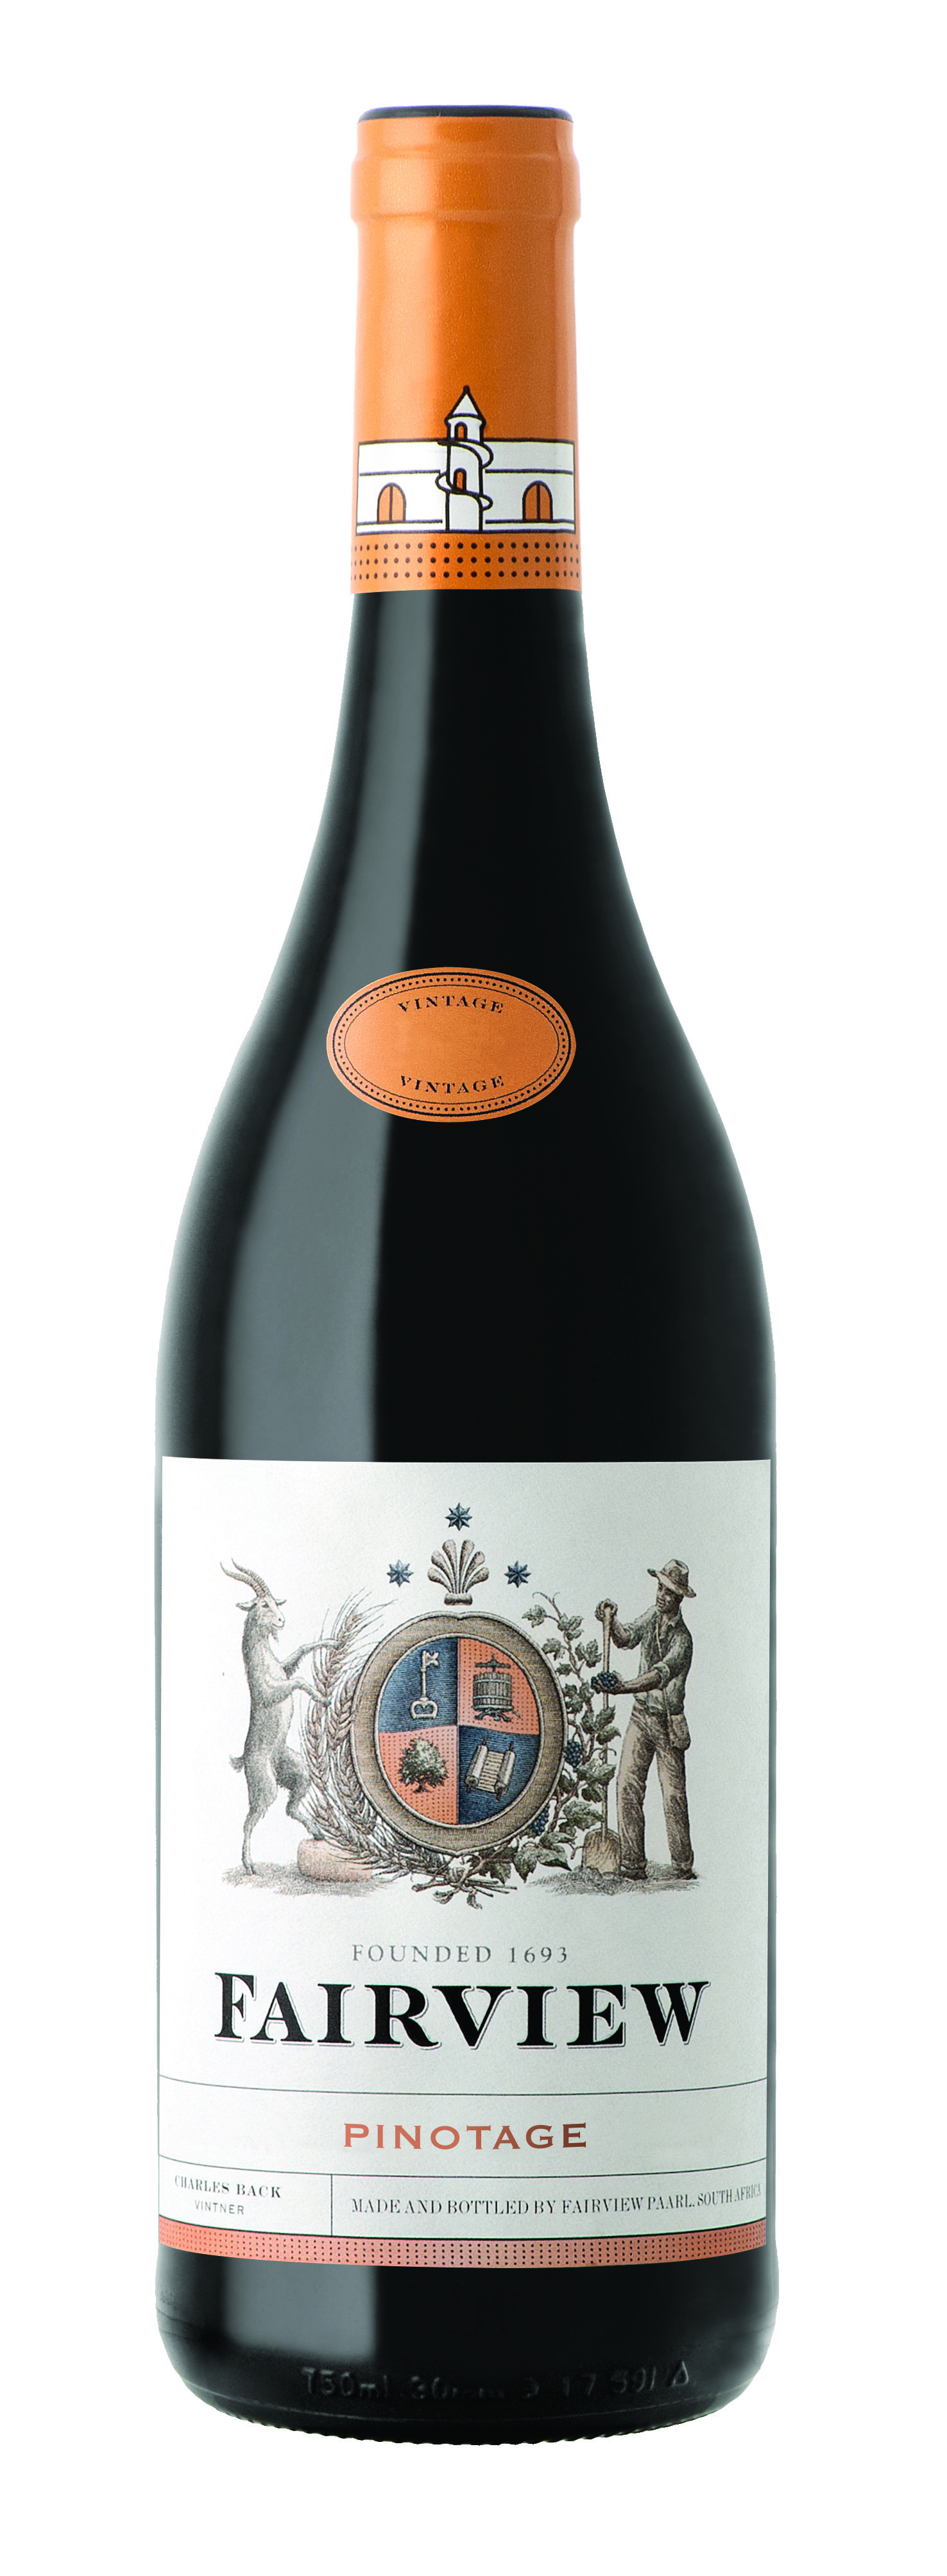 Fairview, Paarl Pinotage 2017